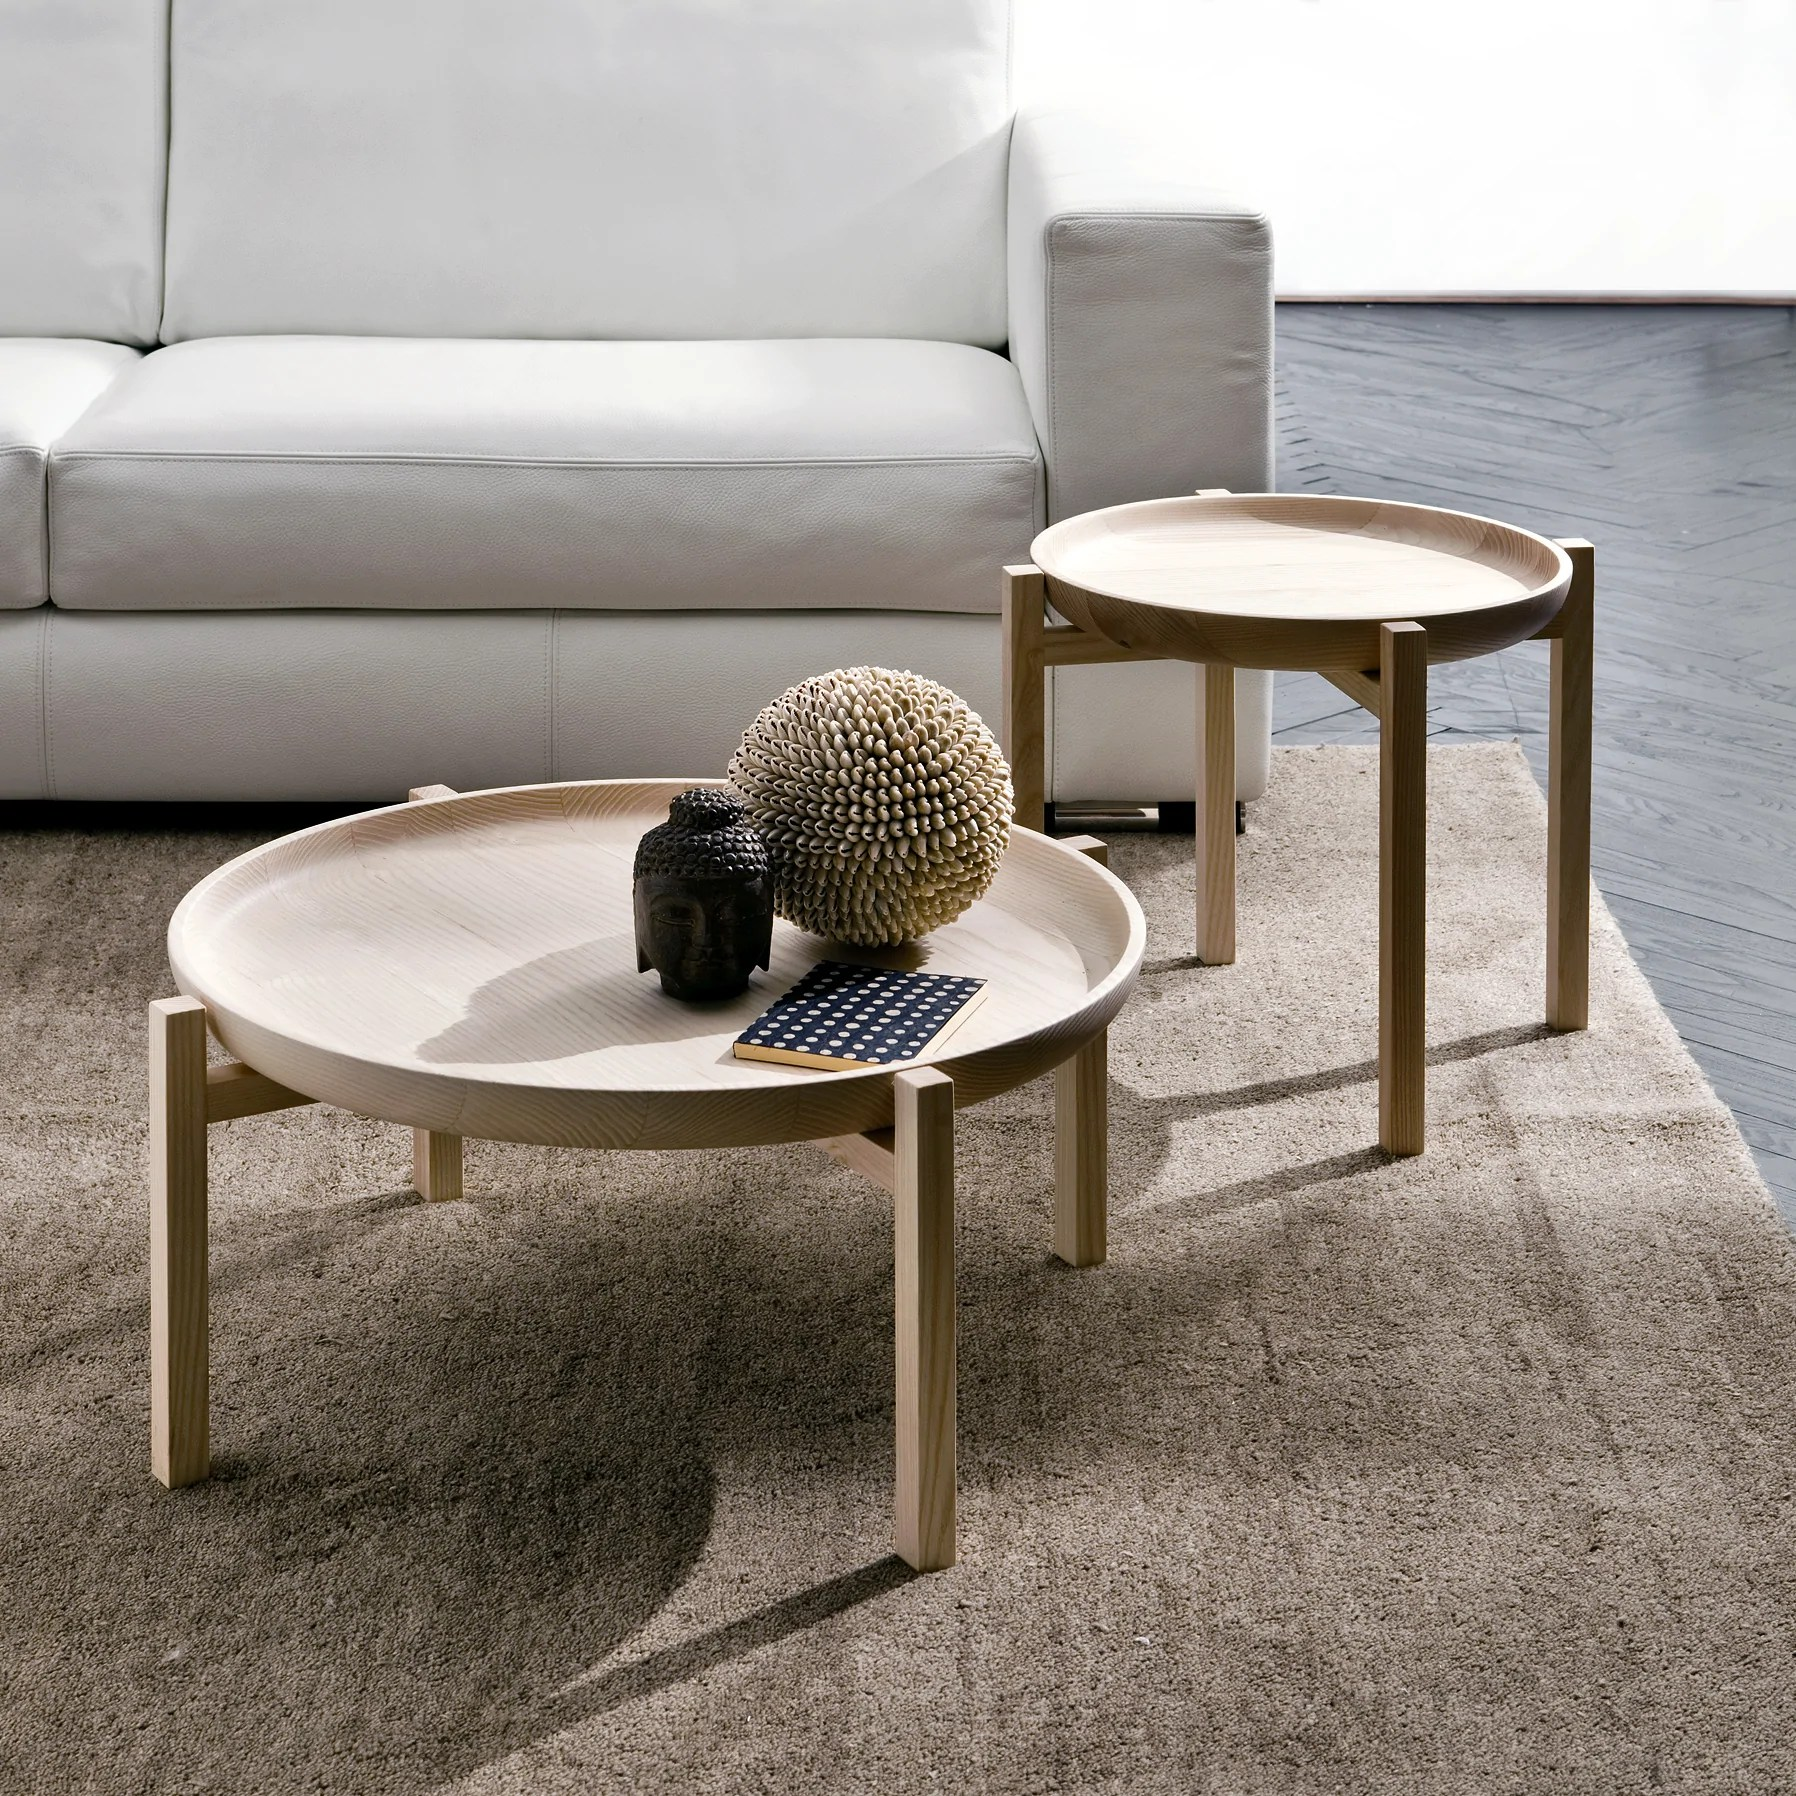 gong tray table